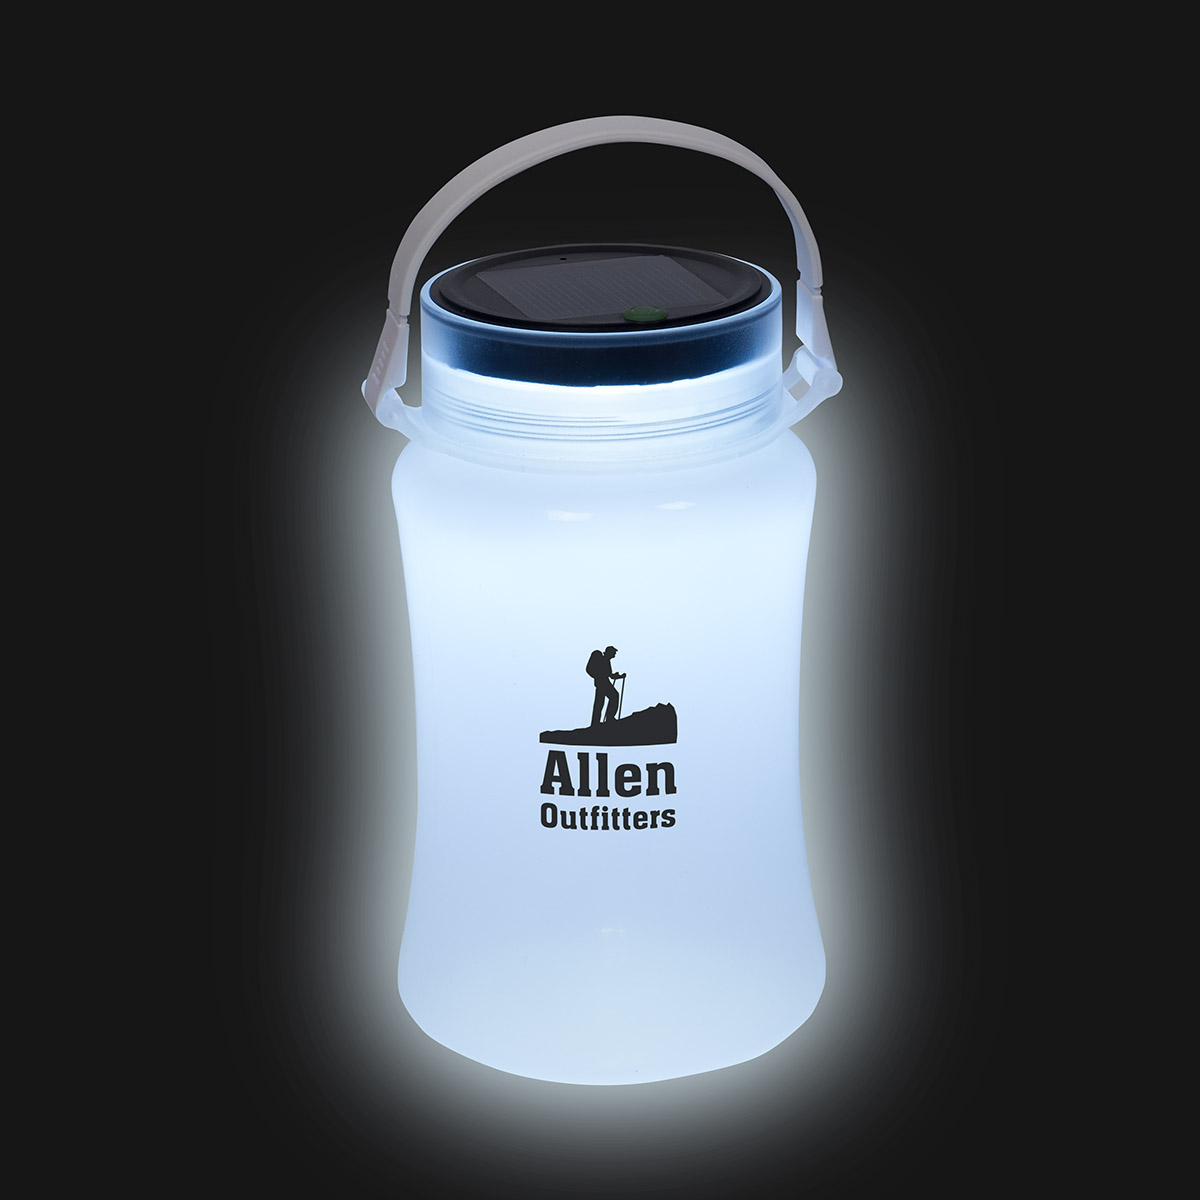 Foldable Waterproof Container w/ Solar Powered Light, WTV-FW16 - 1 Colour Imprint